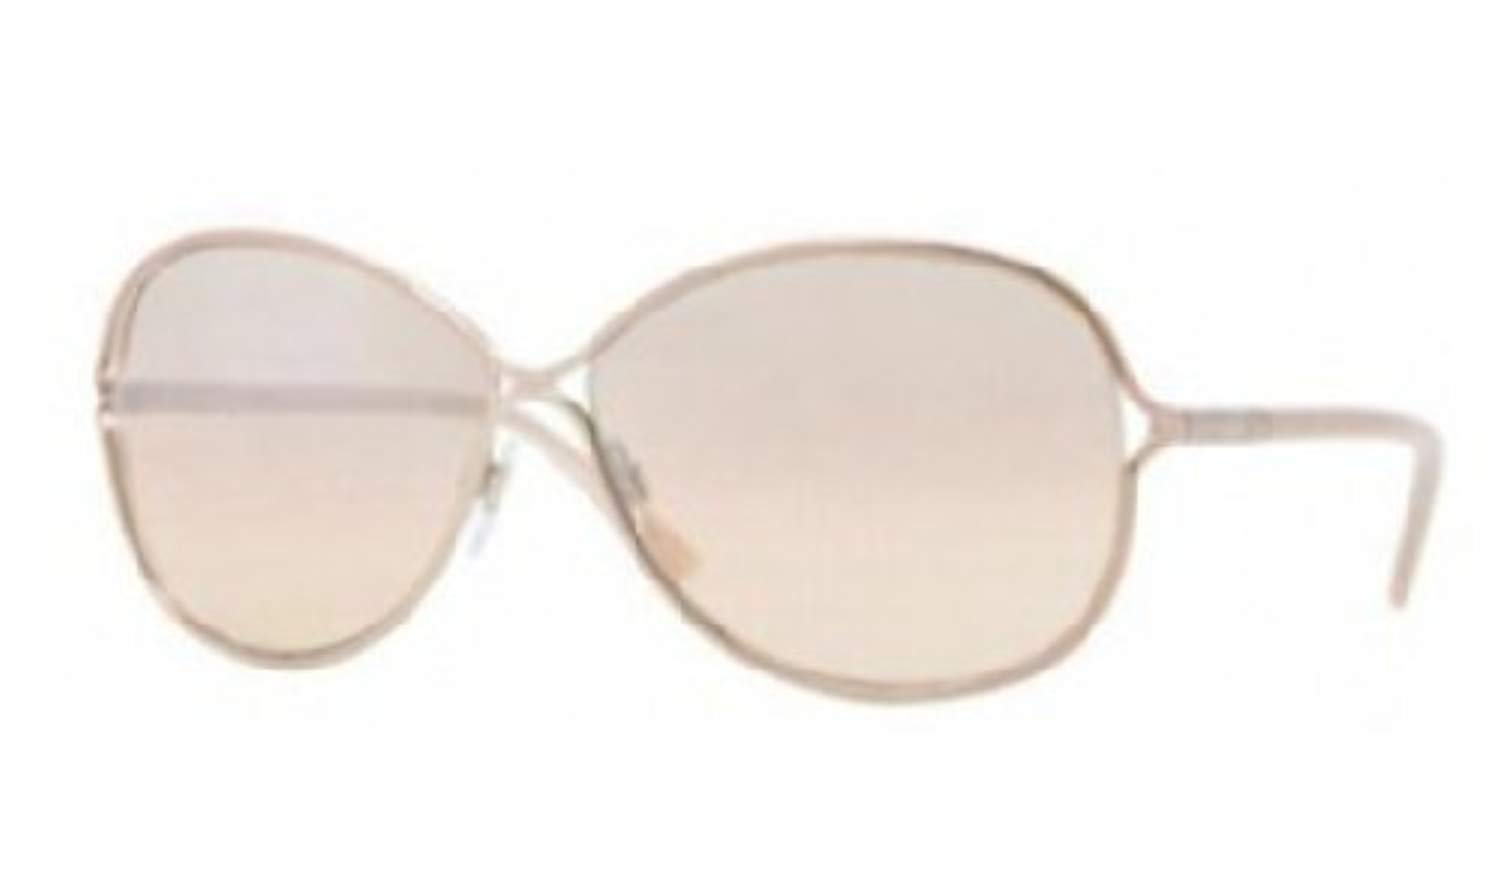 89a8ff95d4a0 Burberry Sunglasses - 3066 Frame  Rose Gold Lens  Beige Gradient Silver  Mirror  Amazon.ca  Sports   Outdoors